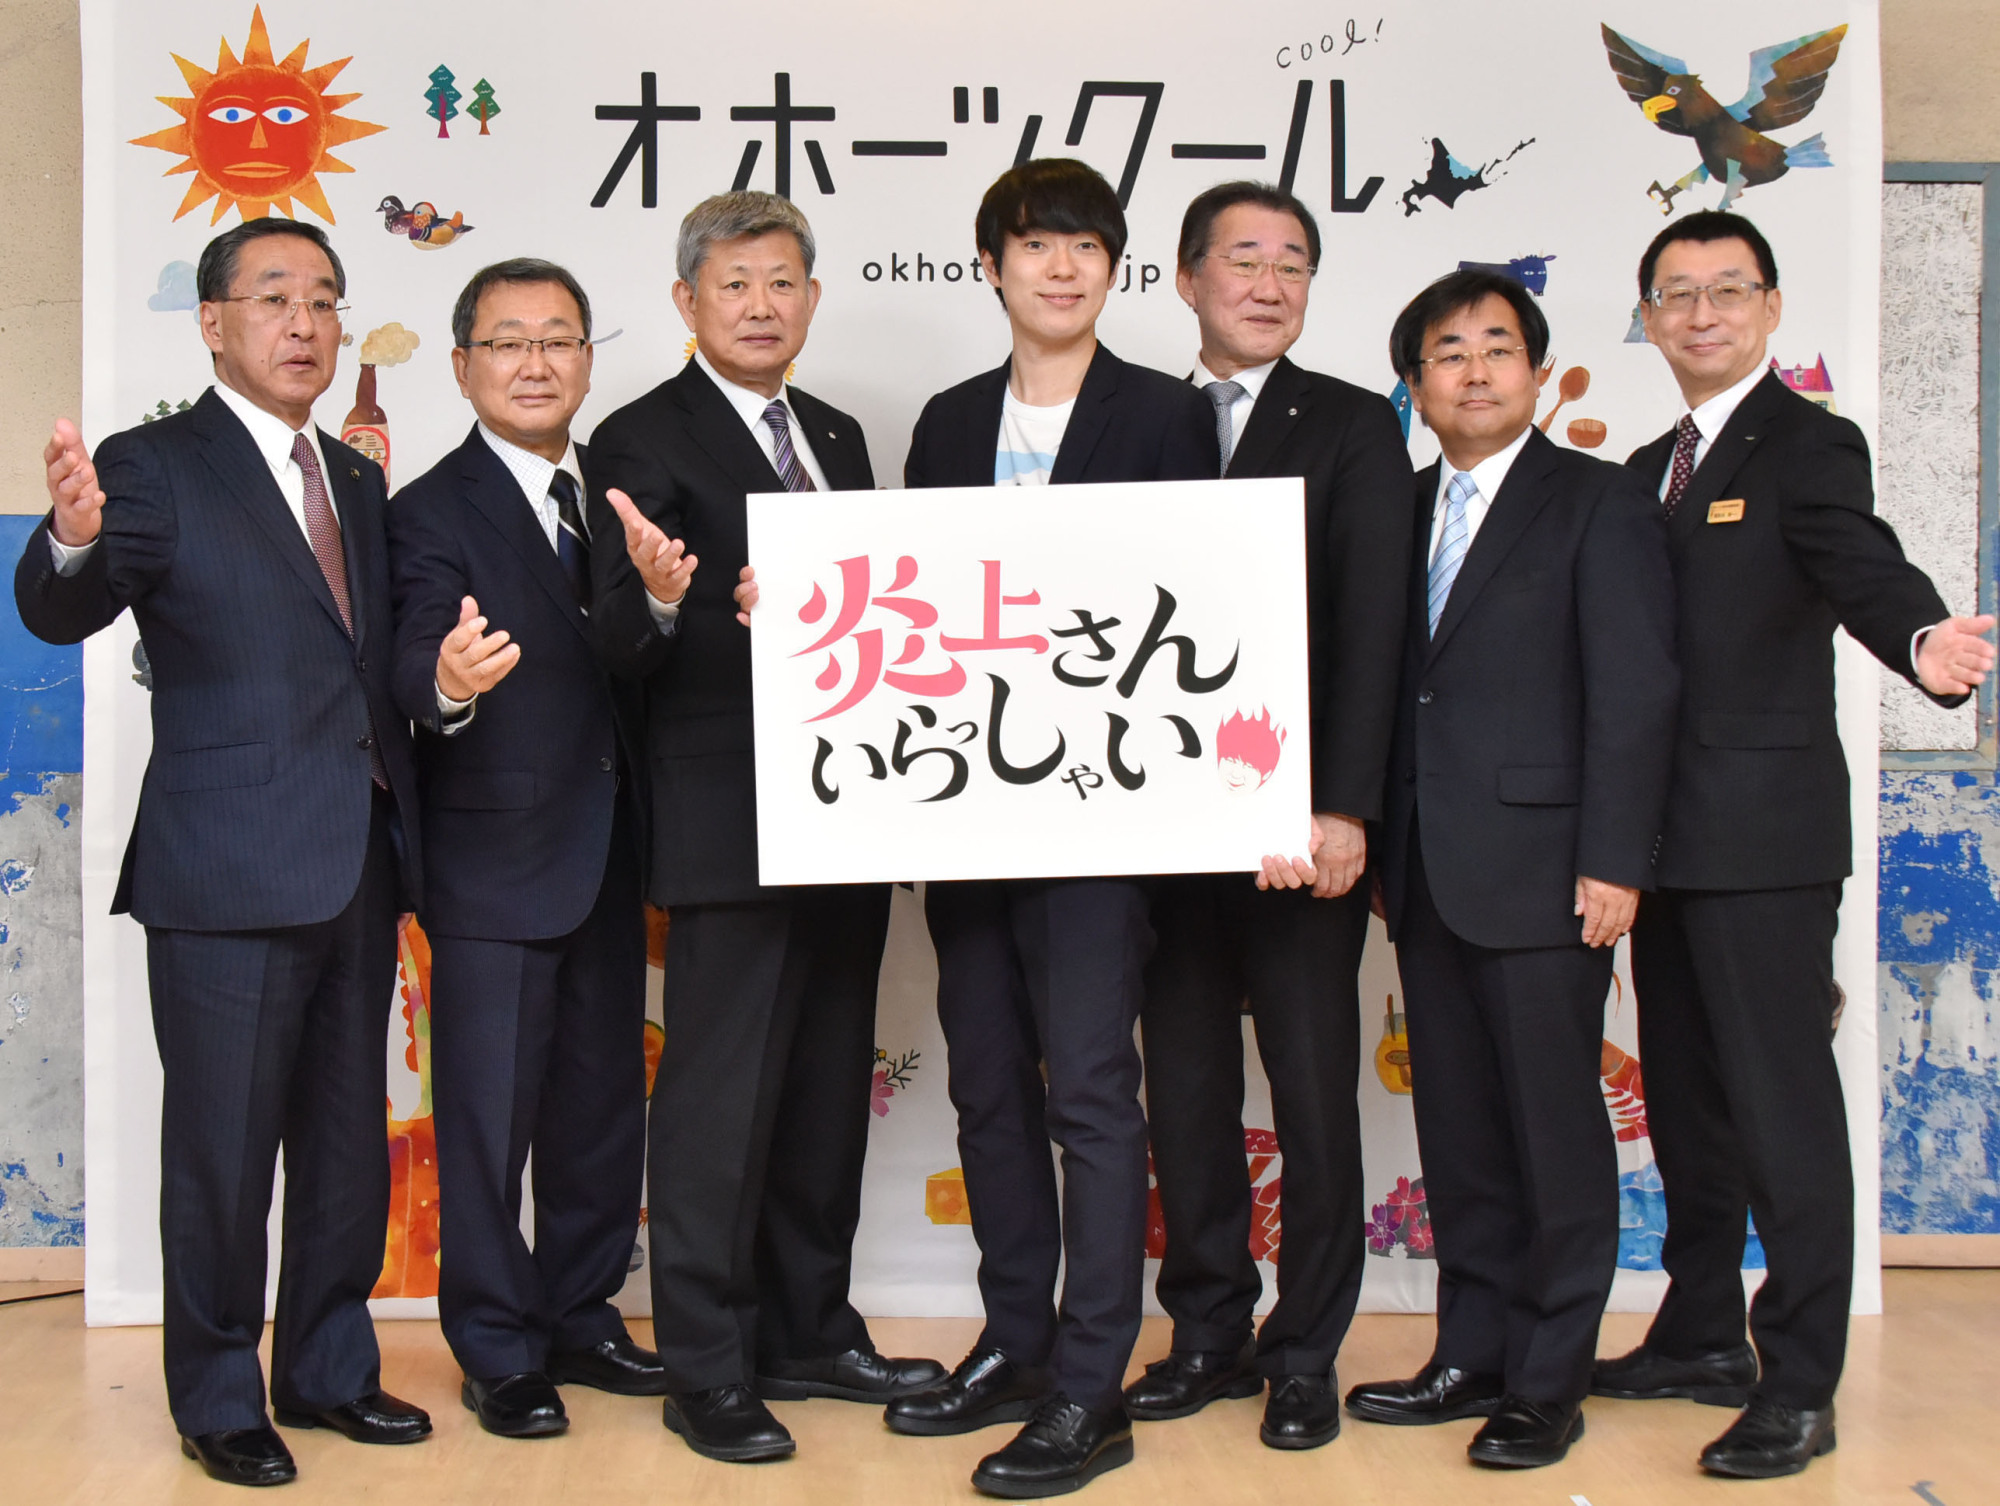 Daisuke Muramoto (center) poses with heads of municipalities from near the Sea of Okhotsk in Hokkaido at a Tokyo event to promote the region in December. Known for cold weather, the municipalities vowed to 'cool' the 'flame of controversy' created by the sharp-tongued comedian.   KYODO